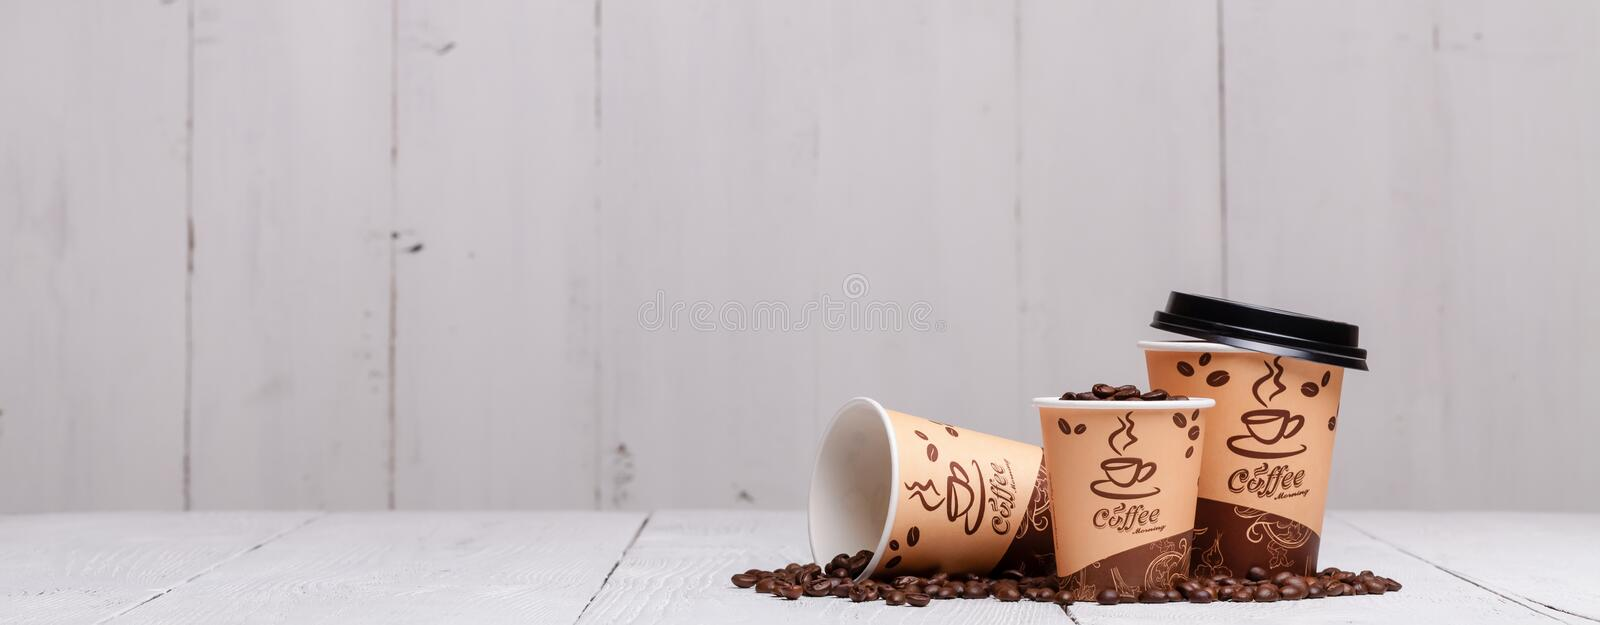 Coffee cups on wooden table for site header royalty free stock photos